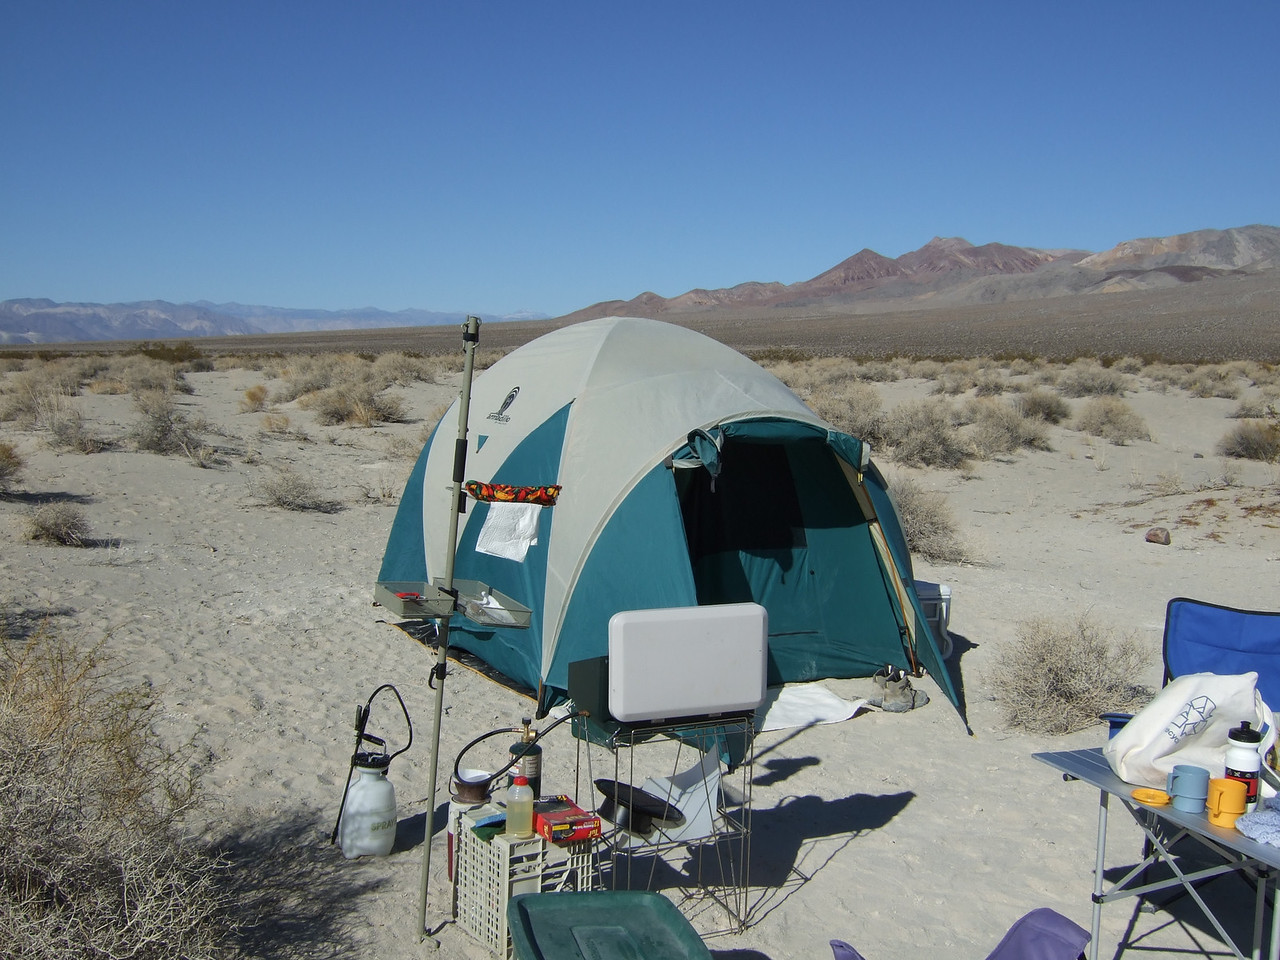 Our tent and dining area.